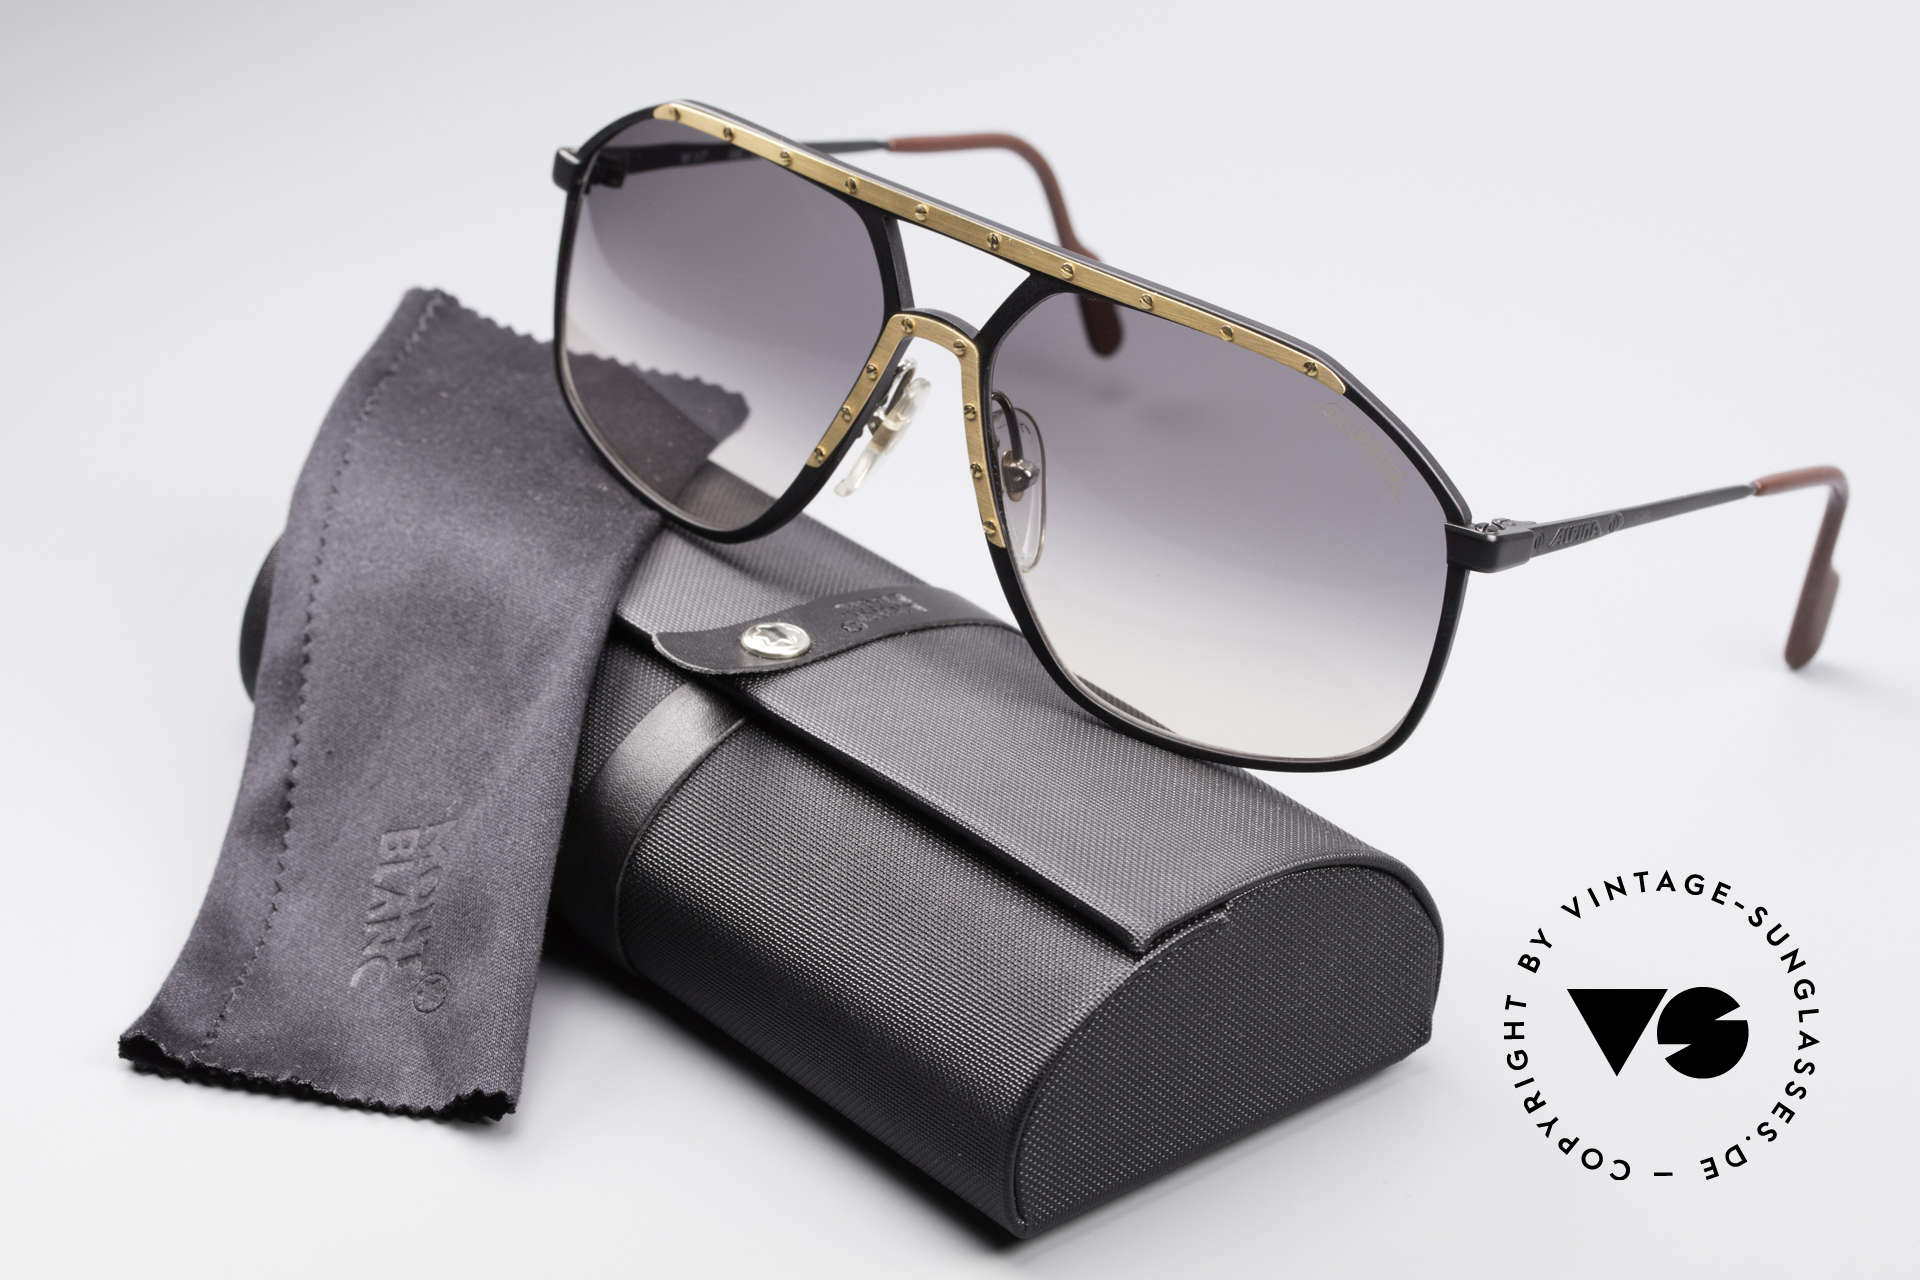 Alpina M1/7 Iconic Vintage Sunglasses, NO RETRO; but an old ORIGINAL with Montblanc case, Made for Men